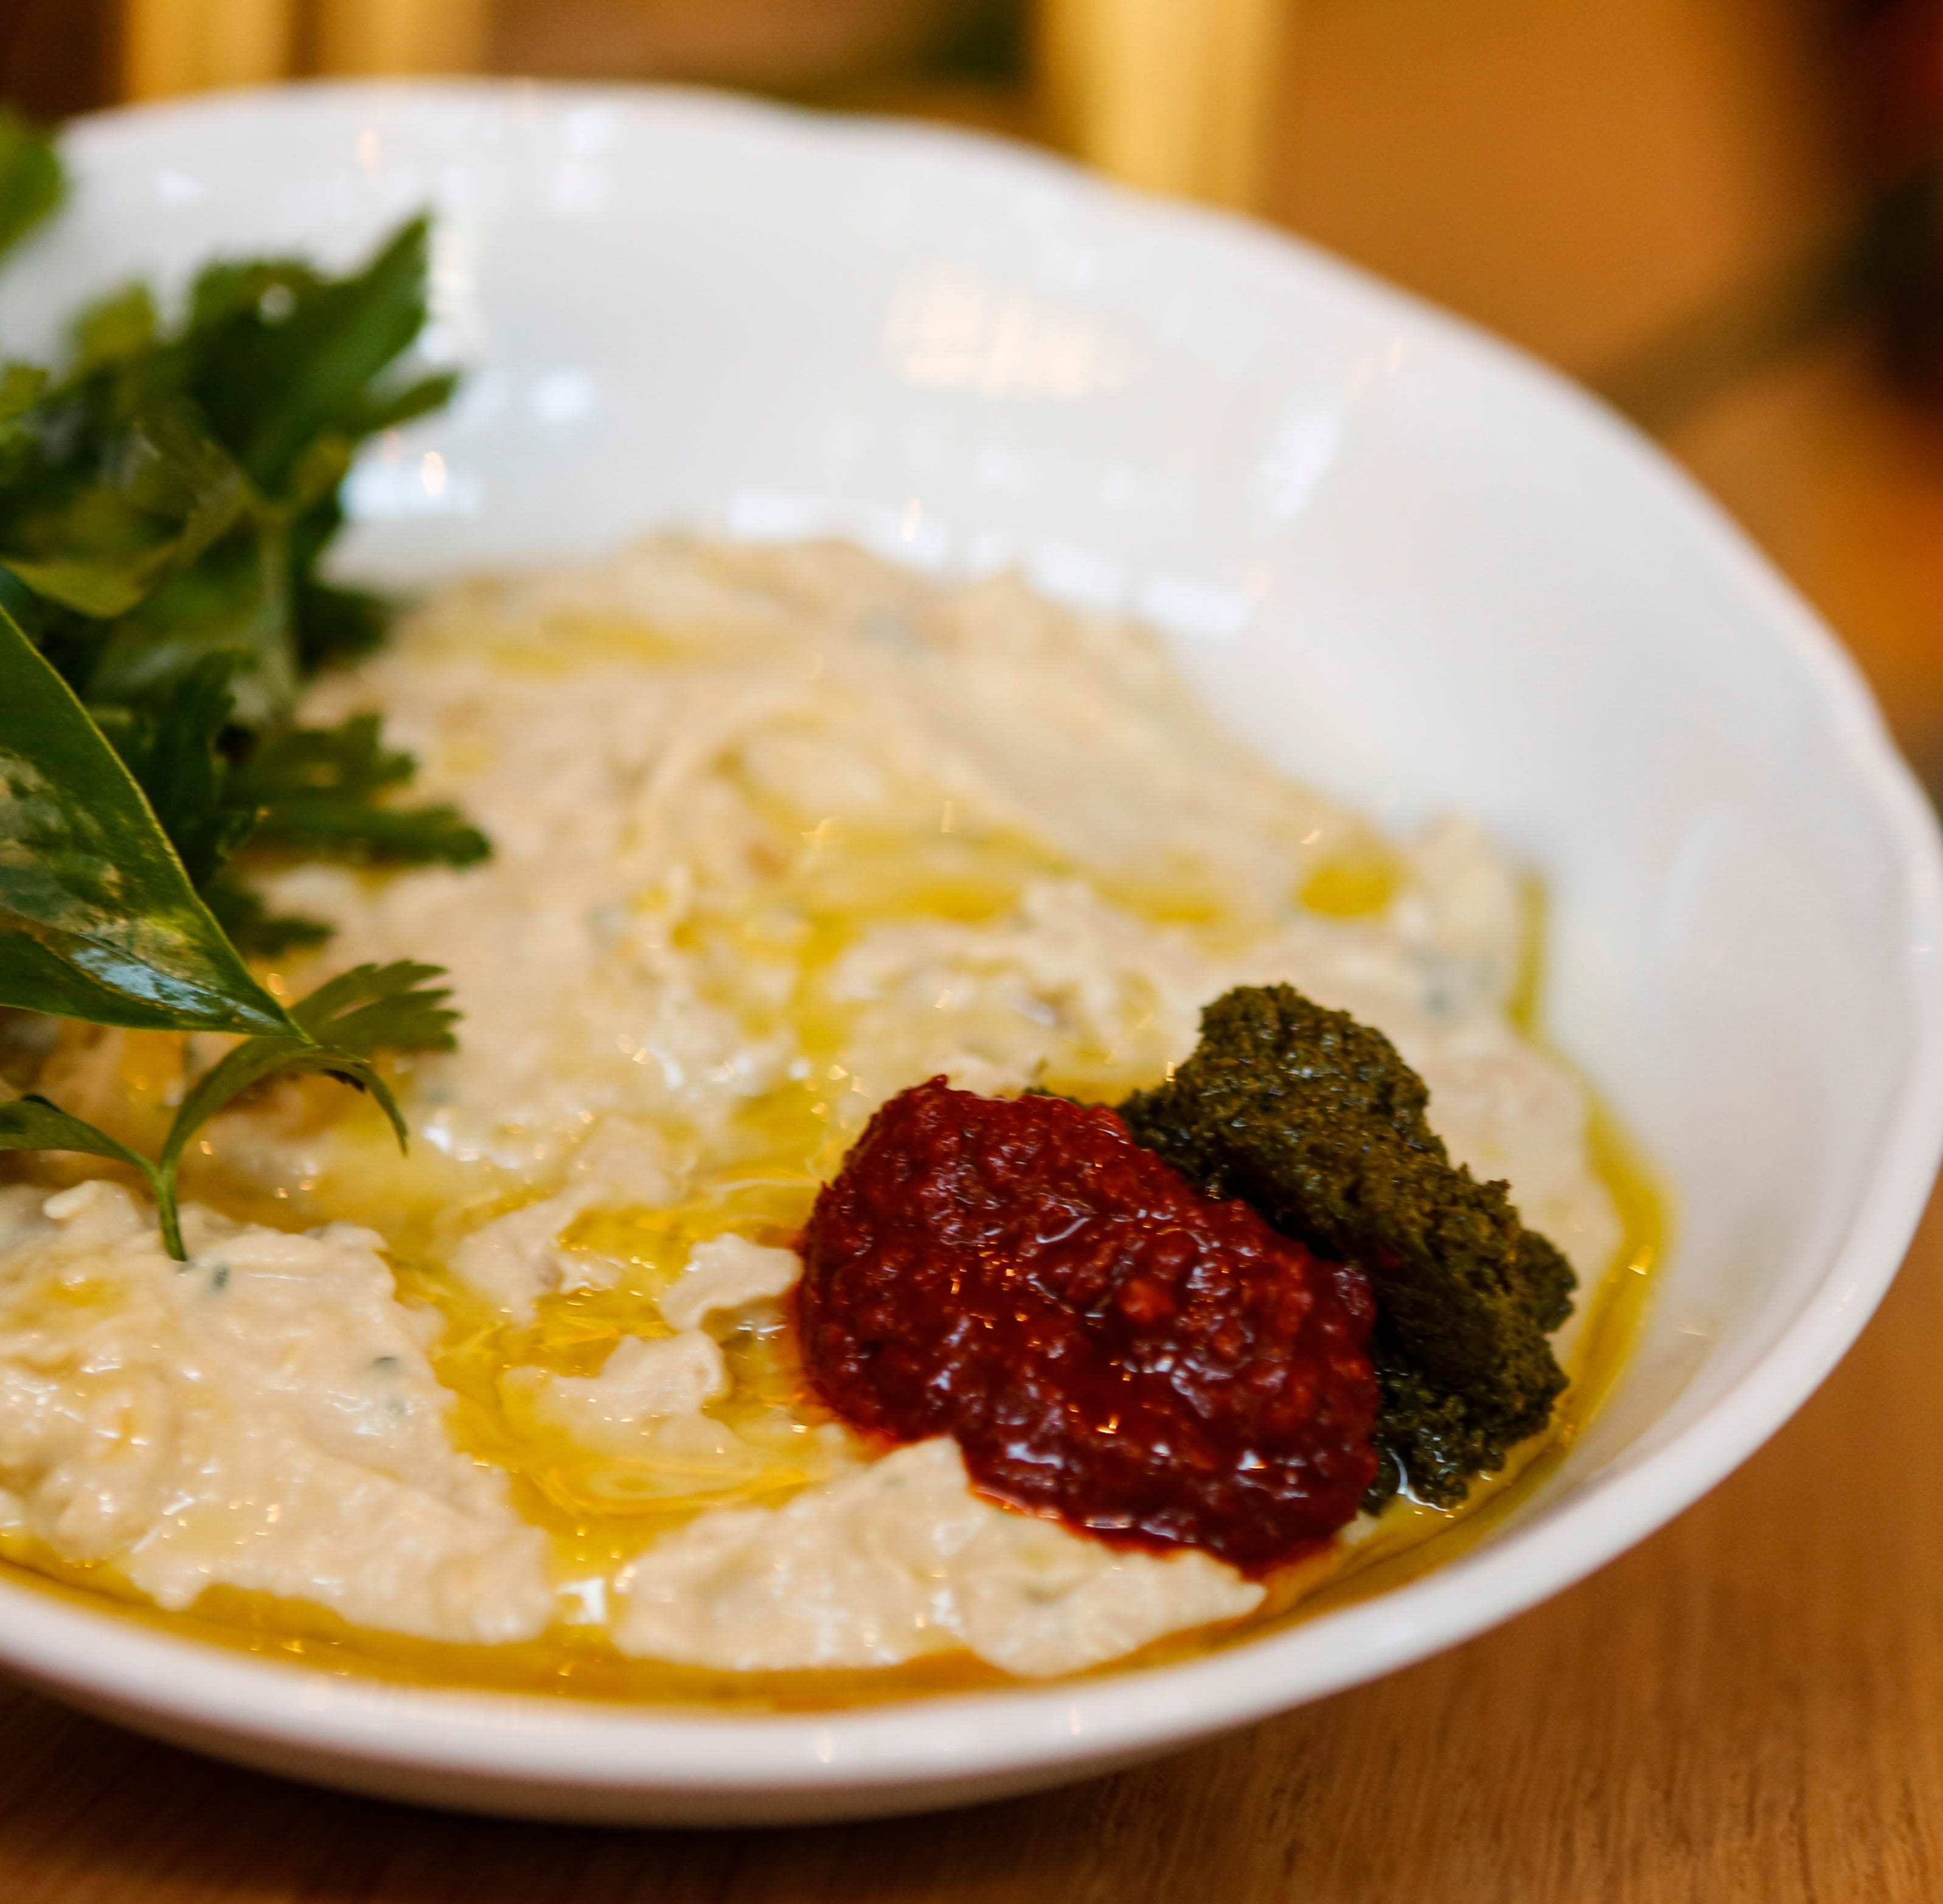 Hummus offers base to launch flavor buffet